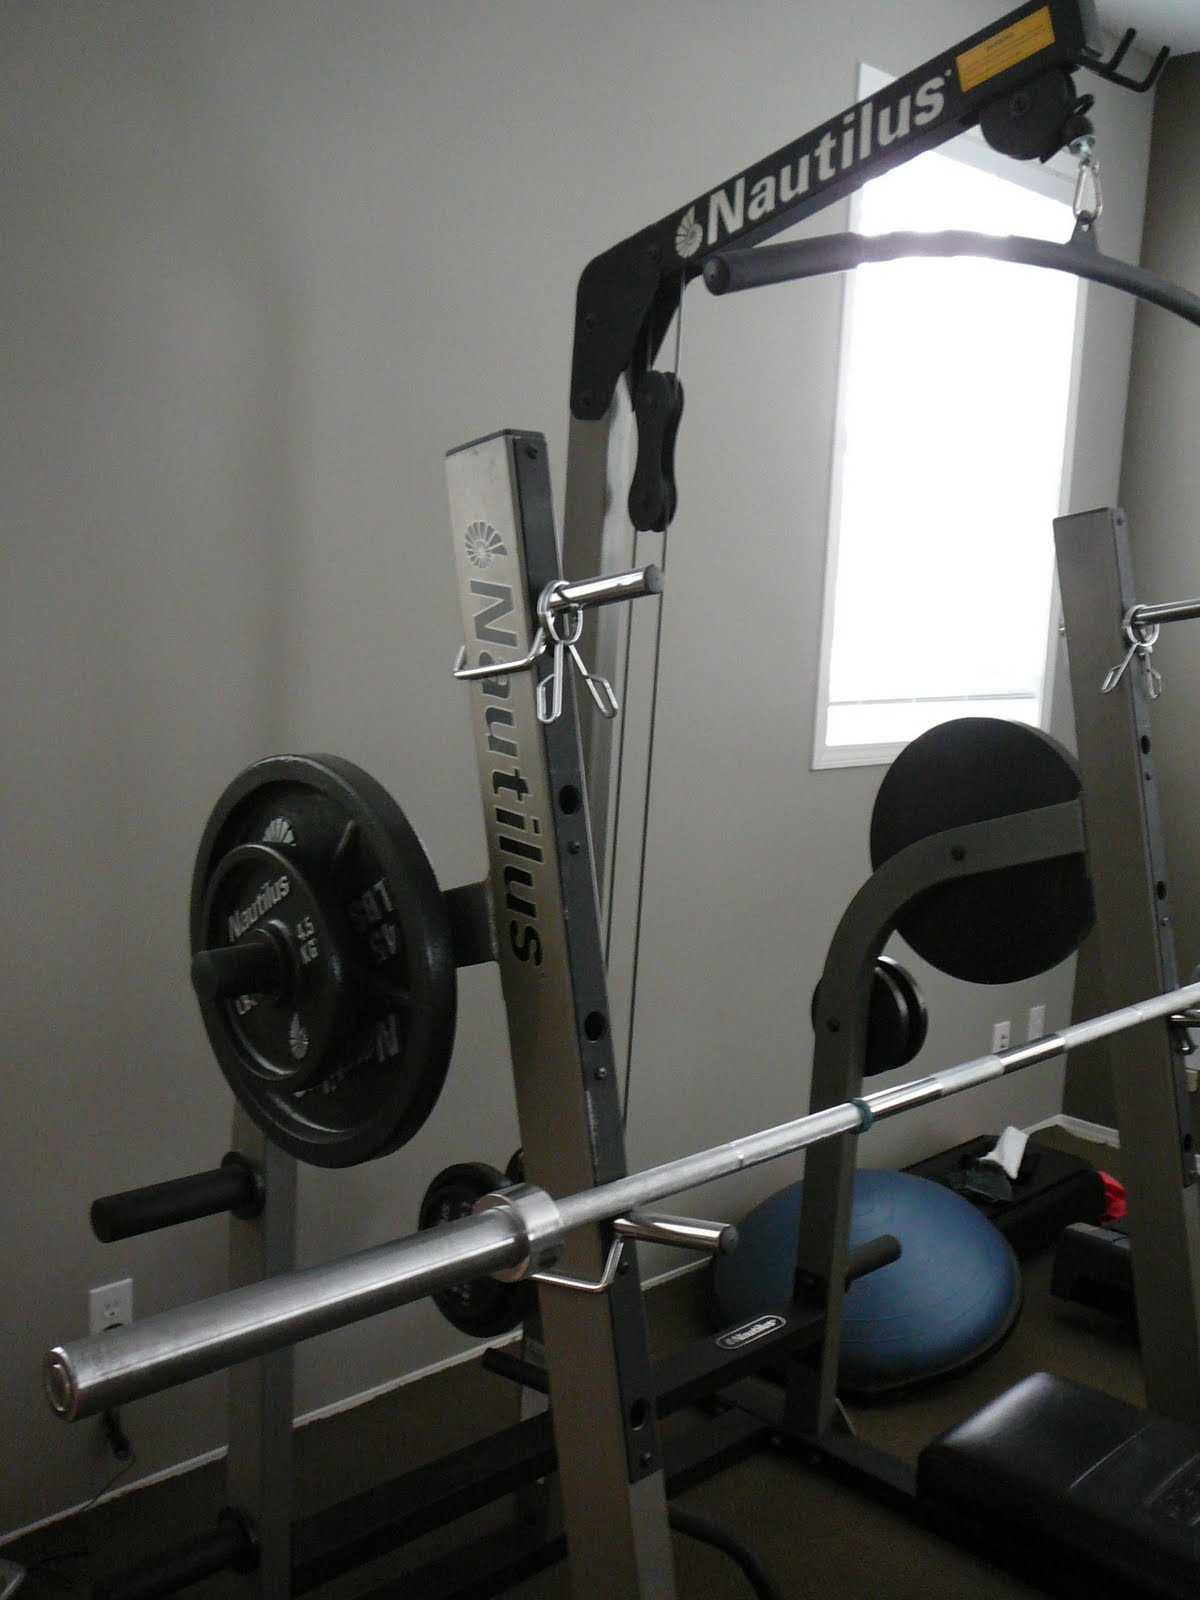 Movingsaleyyc2011 nautilus weight set with bench 600 obo Bench and weight set